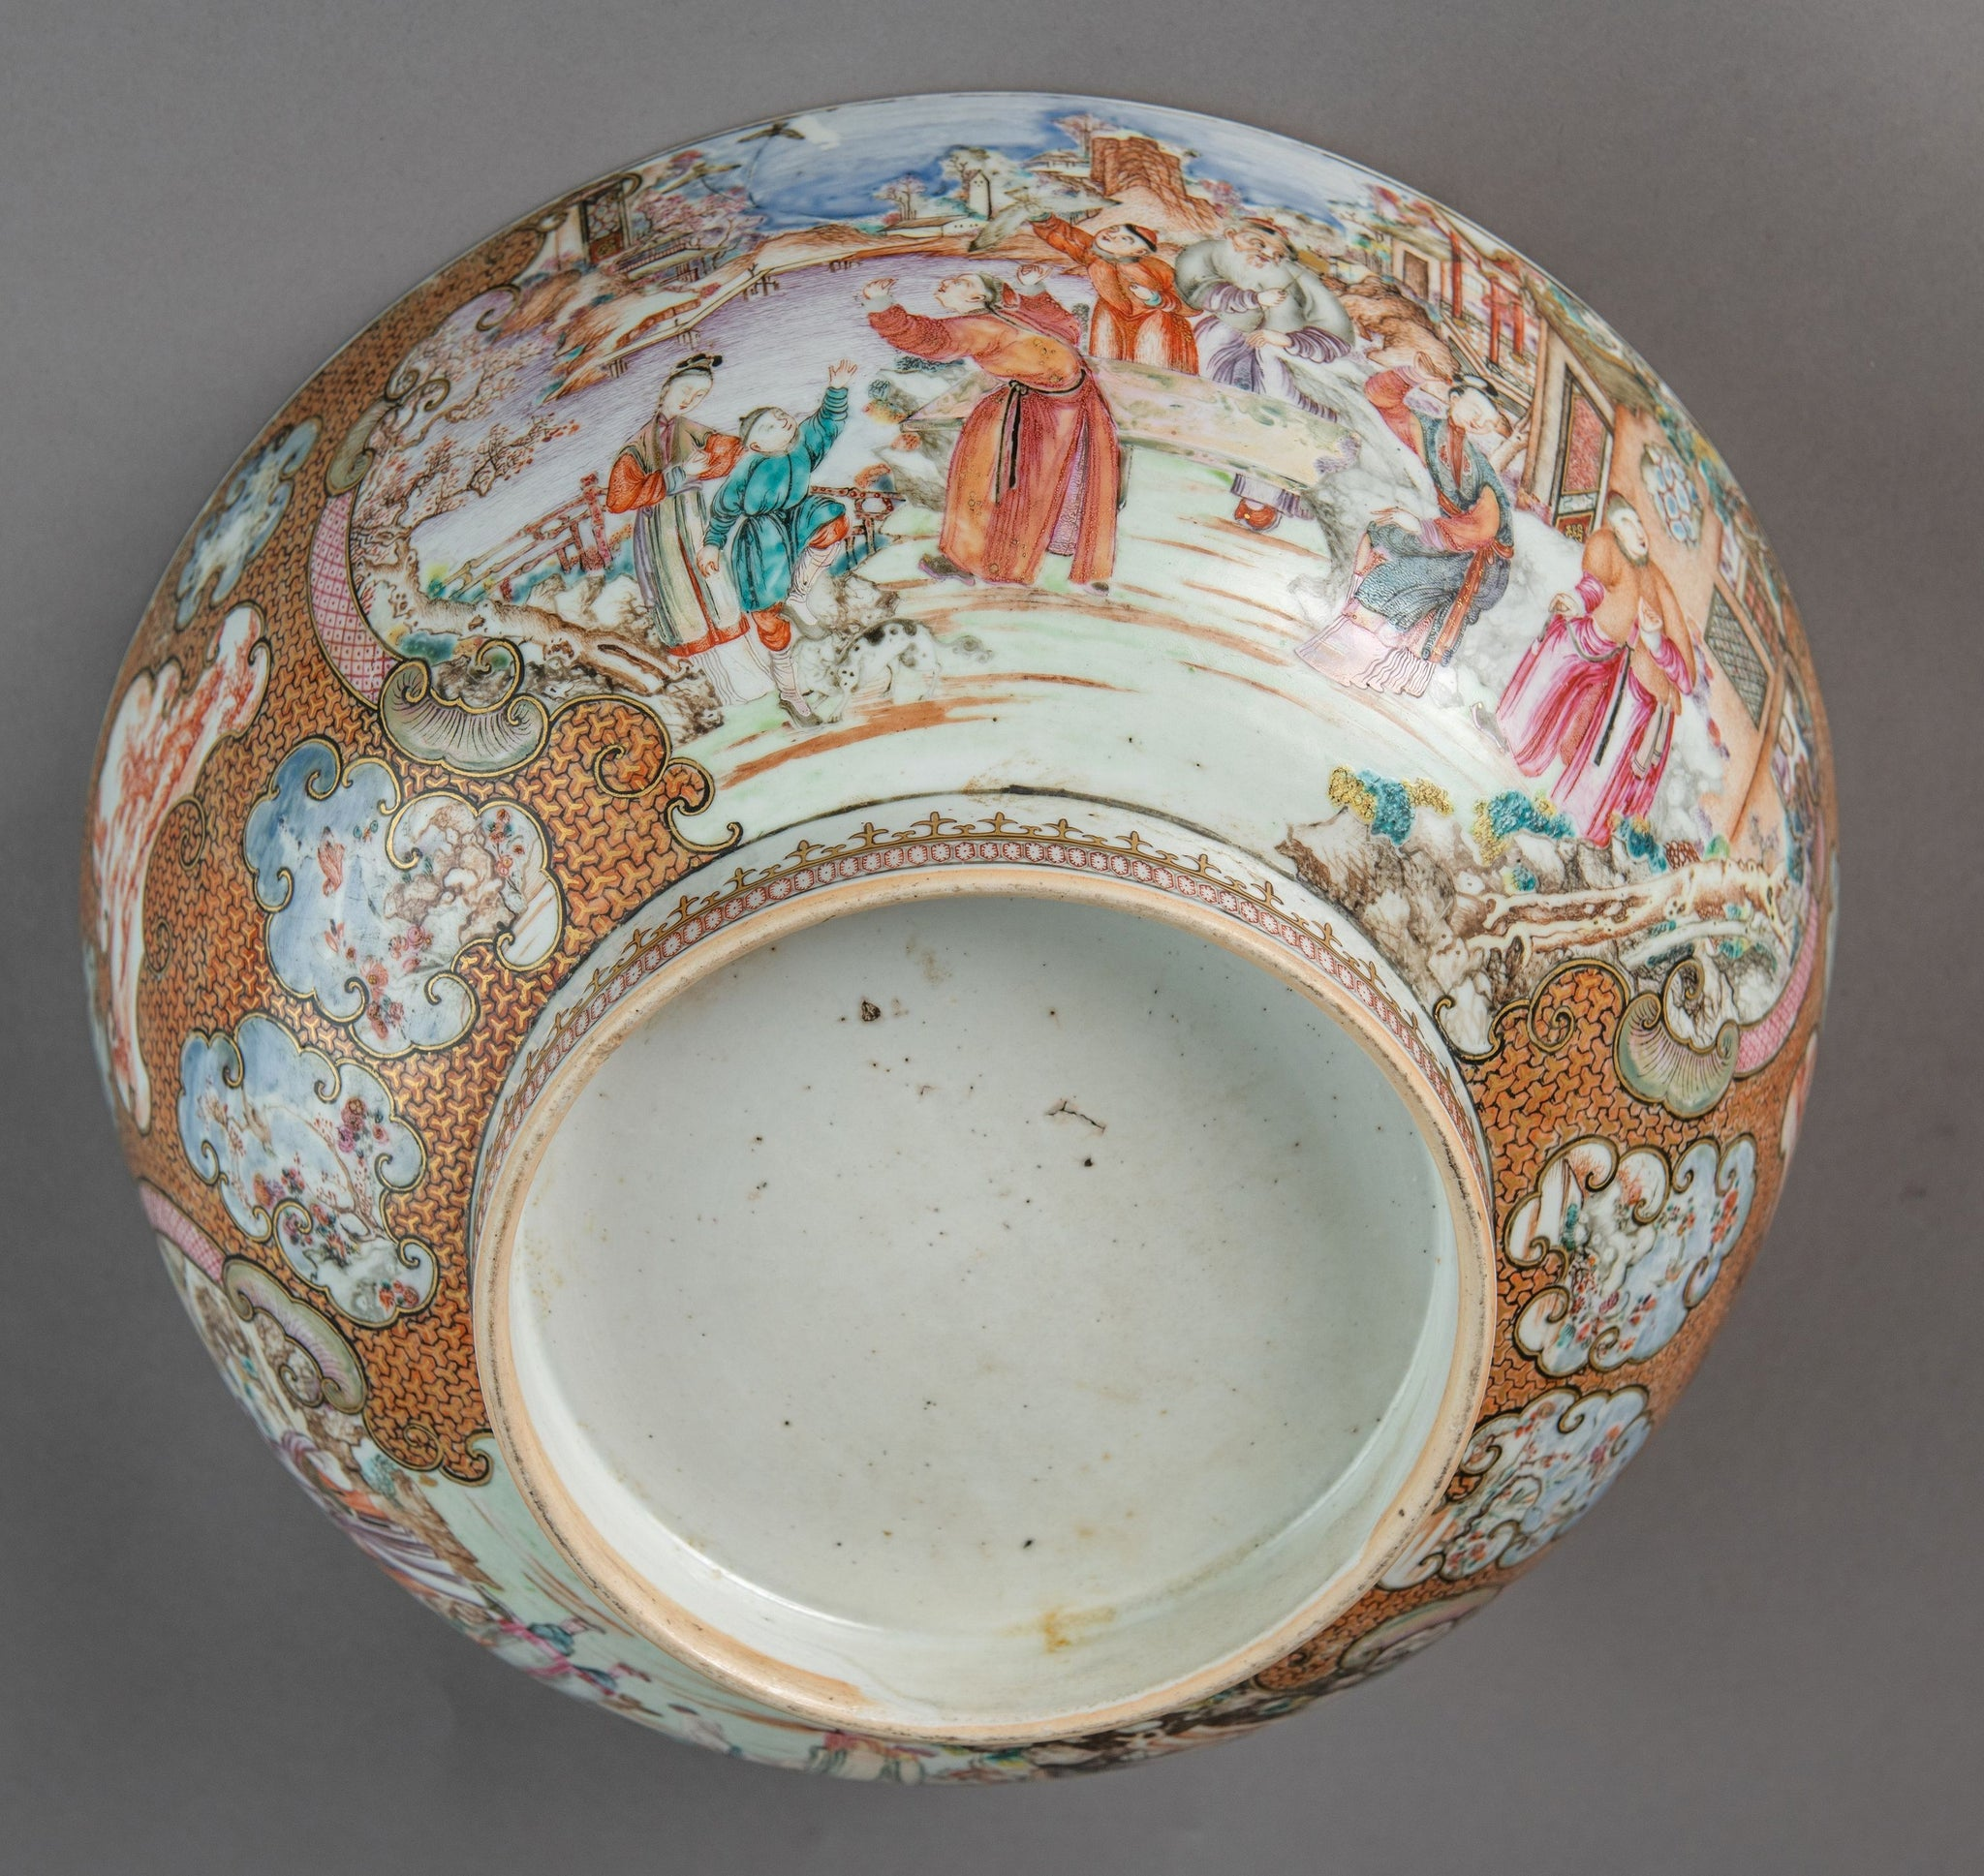 Chinese Export Punch Bowl with Footed Rim